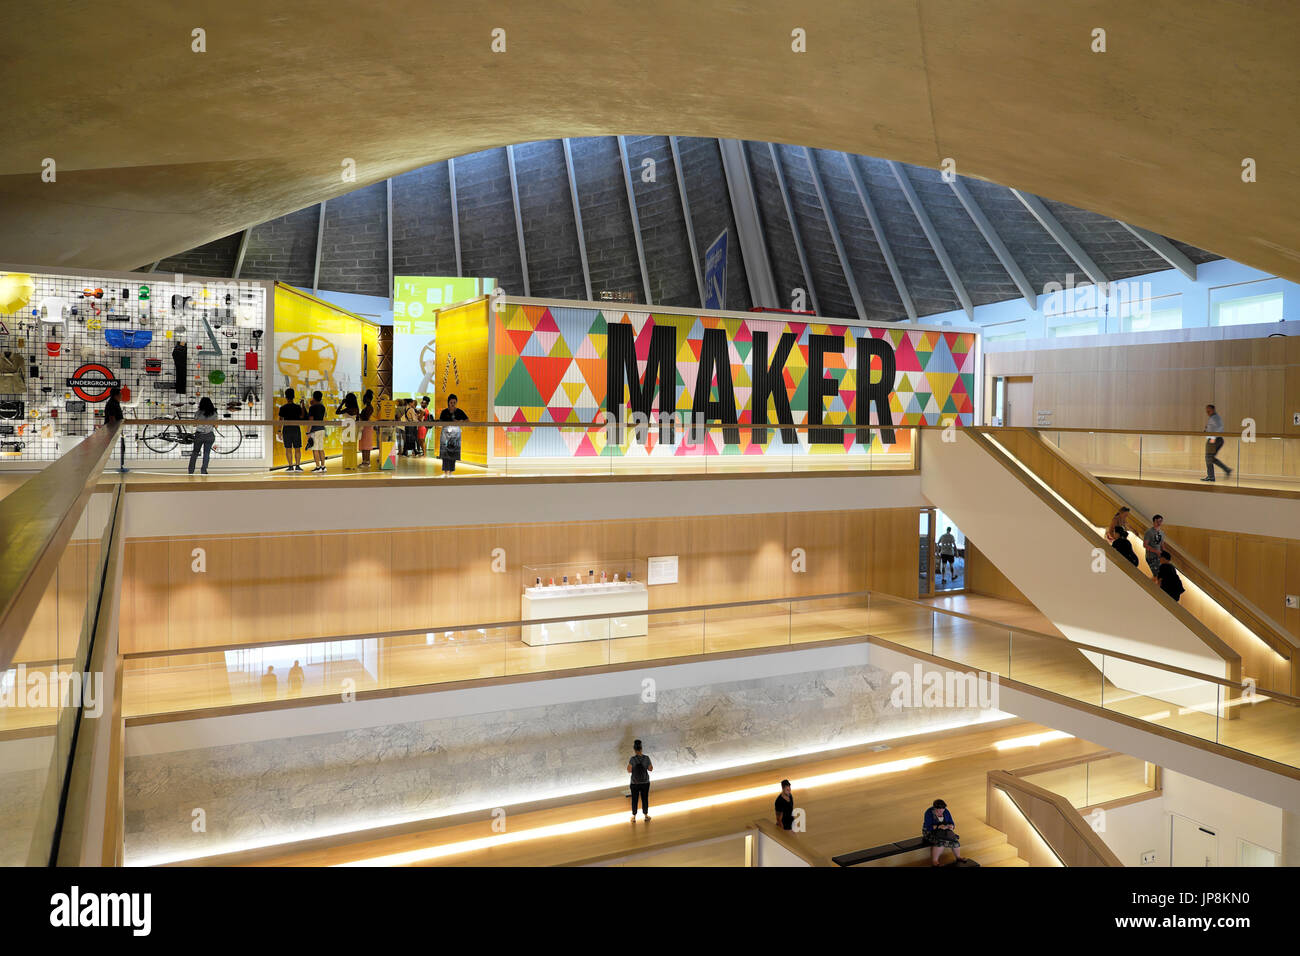 Interior view of the Design Museum MAKER graphics sign in the former Commonwealth Institute in Kensington, London UK  KATHY DEWITT - Stock Image